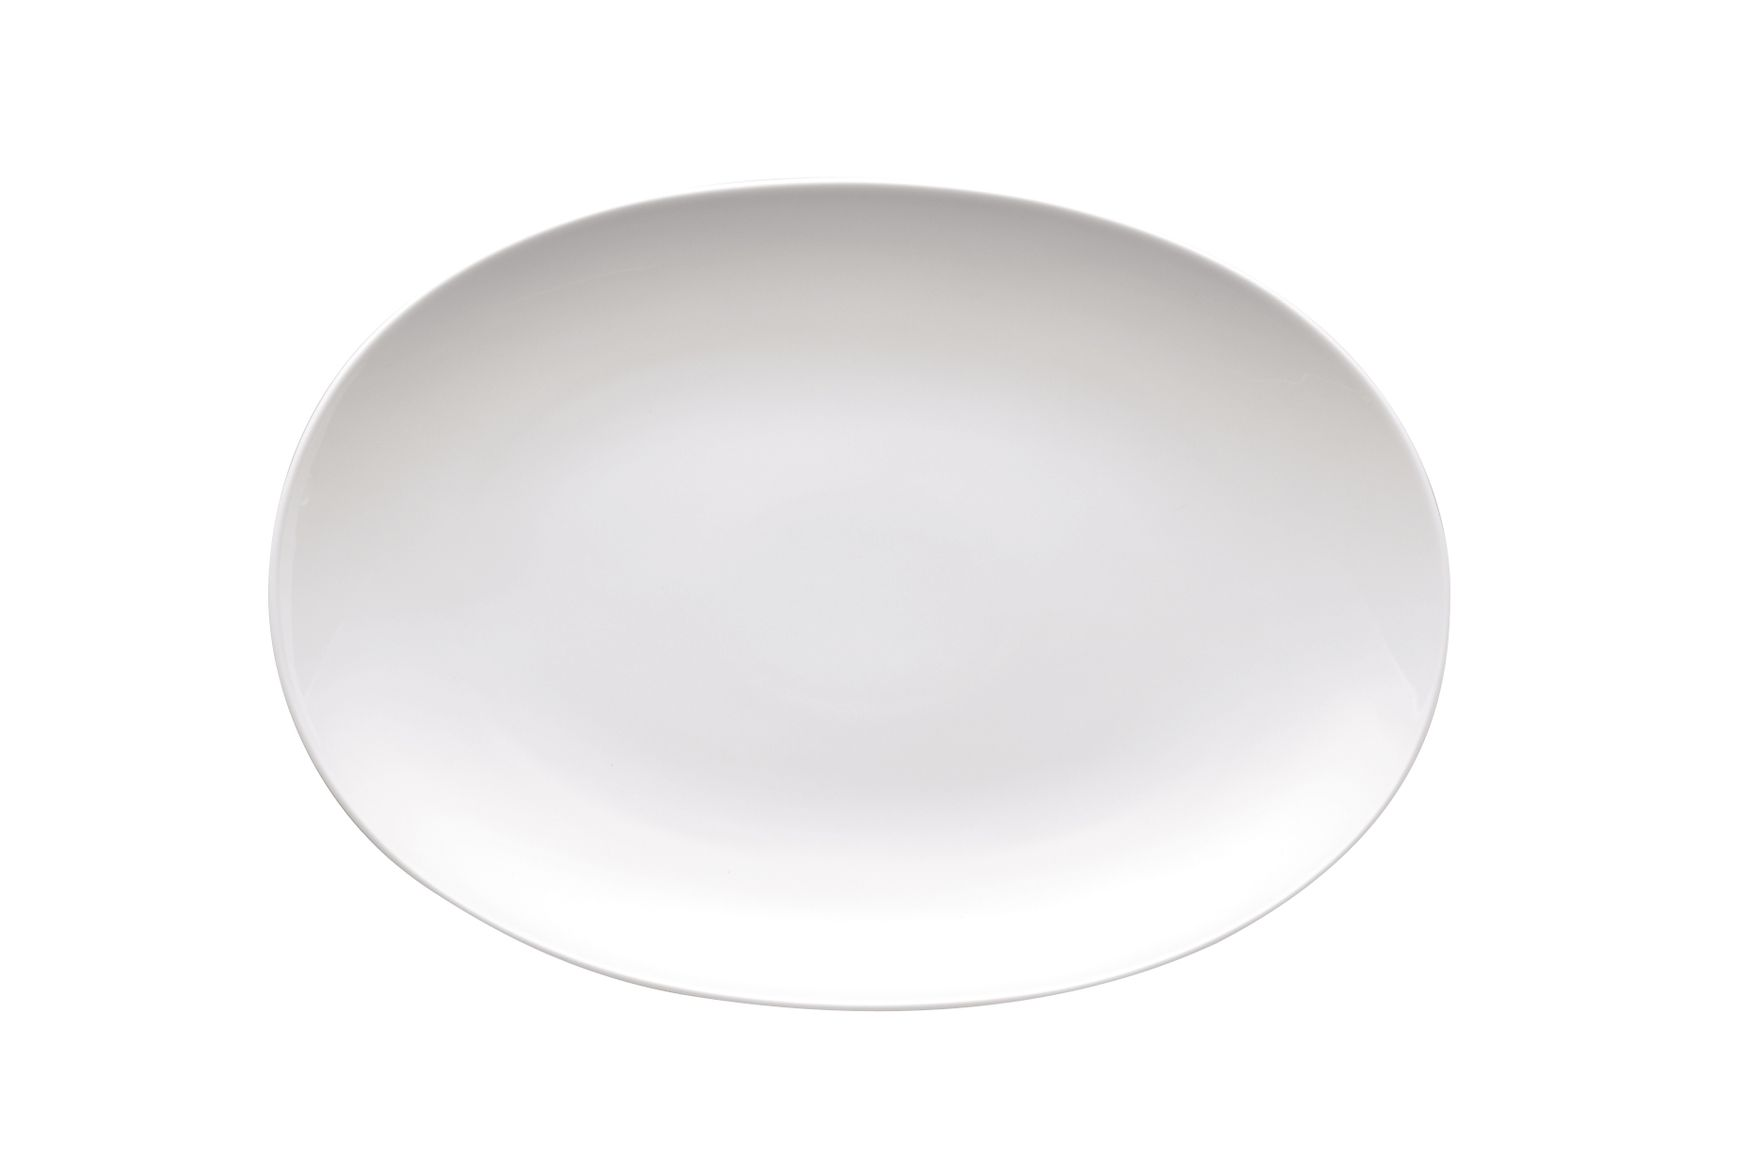 "Thomas Medaillon White Oval Plate / Platter 13"" thumb 1"